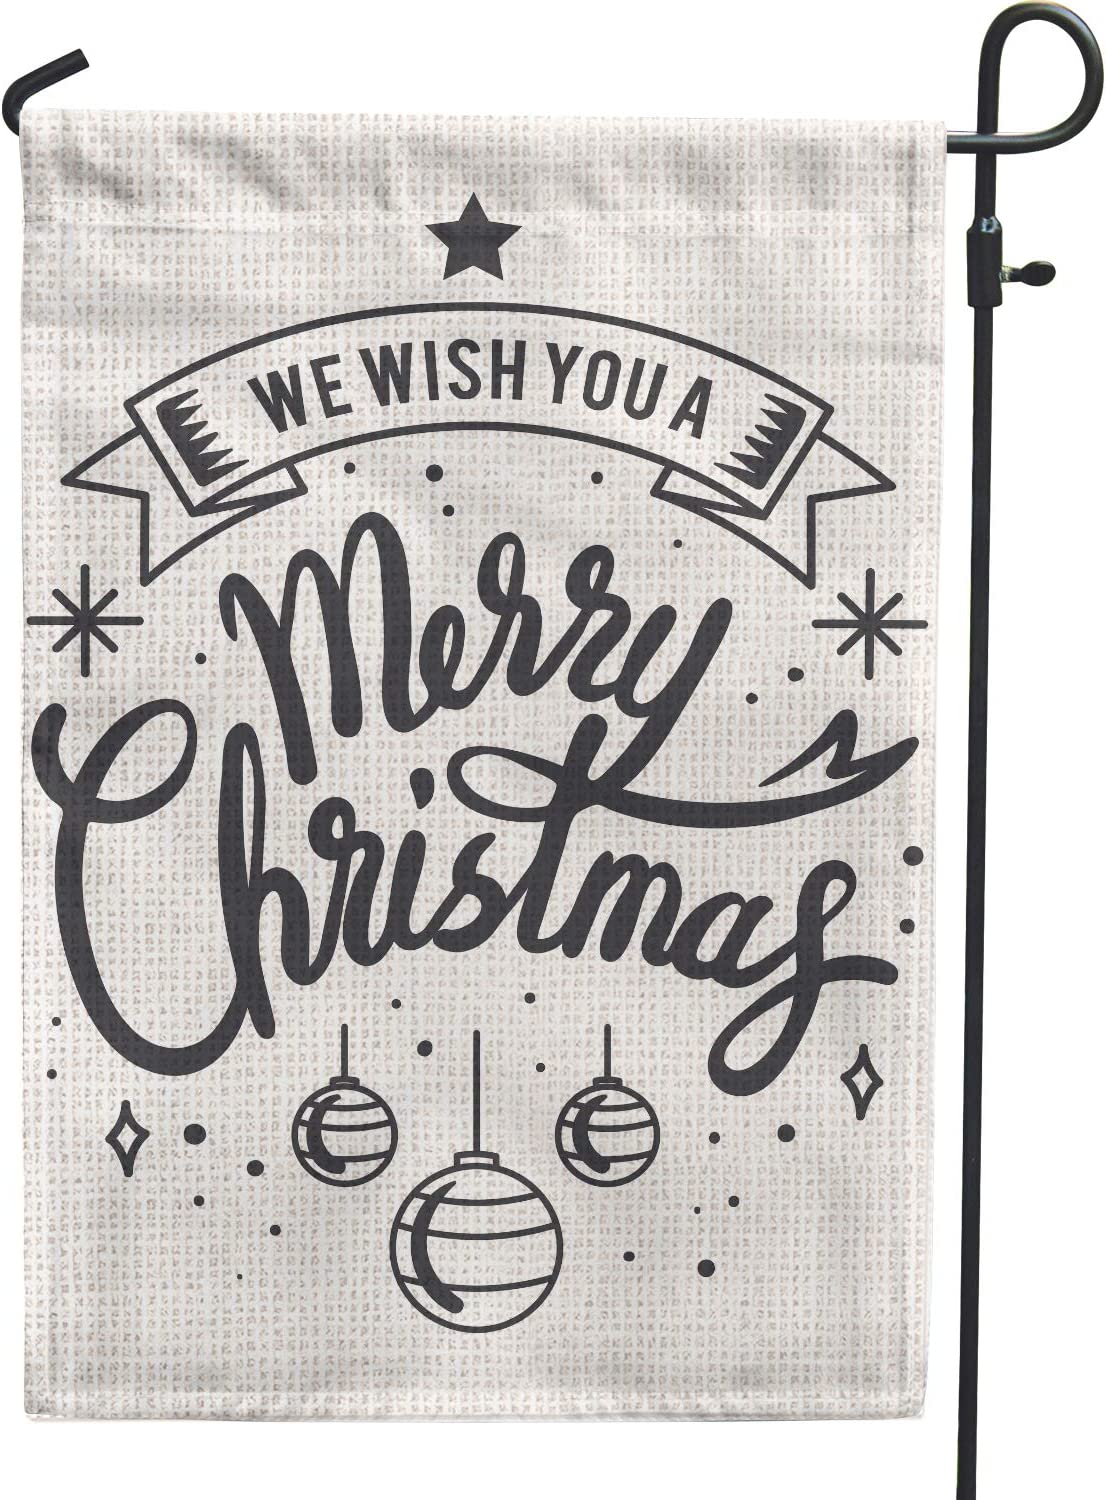 Hollyhorse We Wish You Merry Christmas Garden Flag - Black and White Hanging Happy Christmas Xmas Decoration Flag | 12.5 x18 Inch Double Sided Burlap Flag for Outdoor Outside Yard Decor